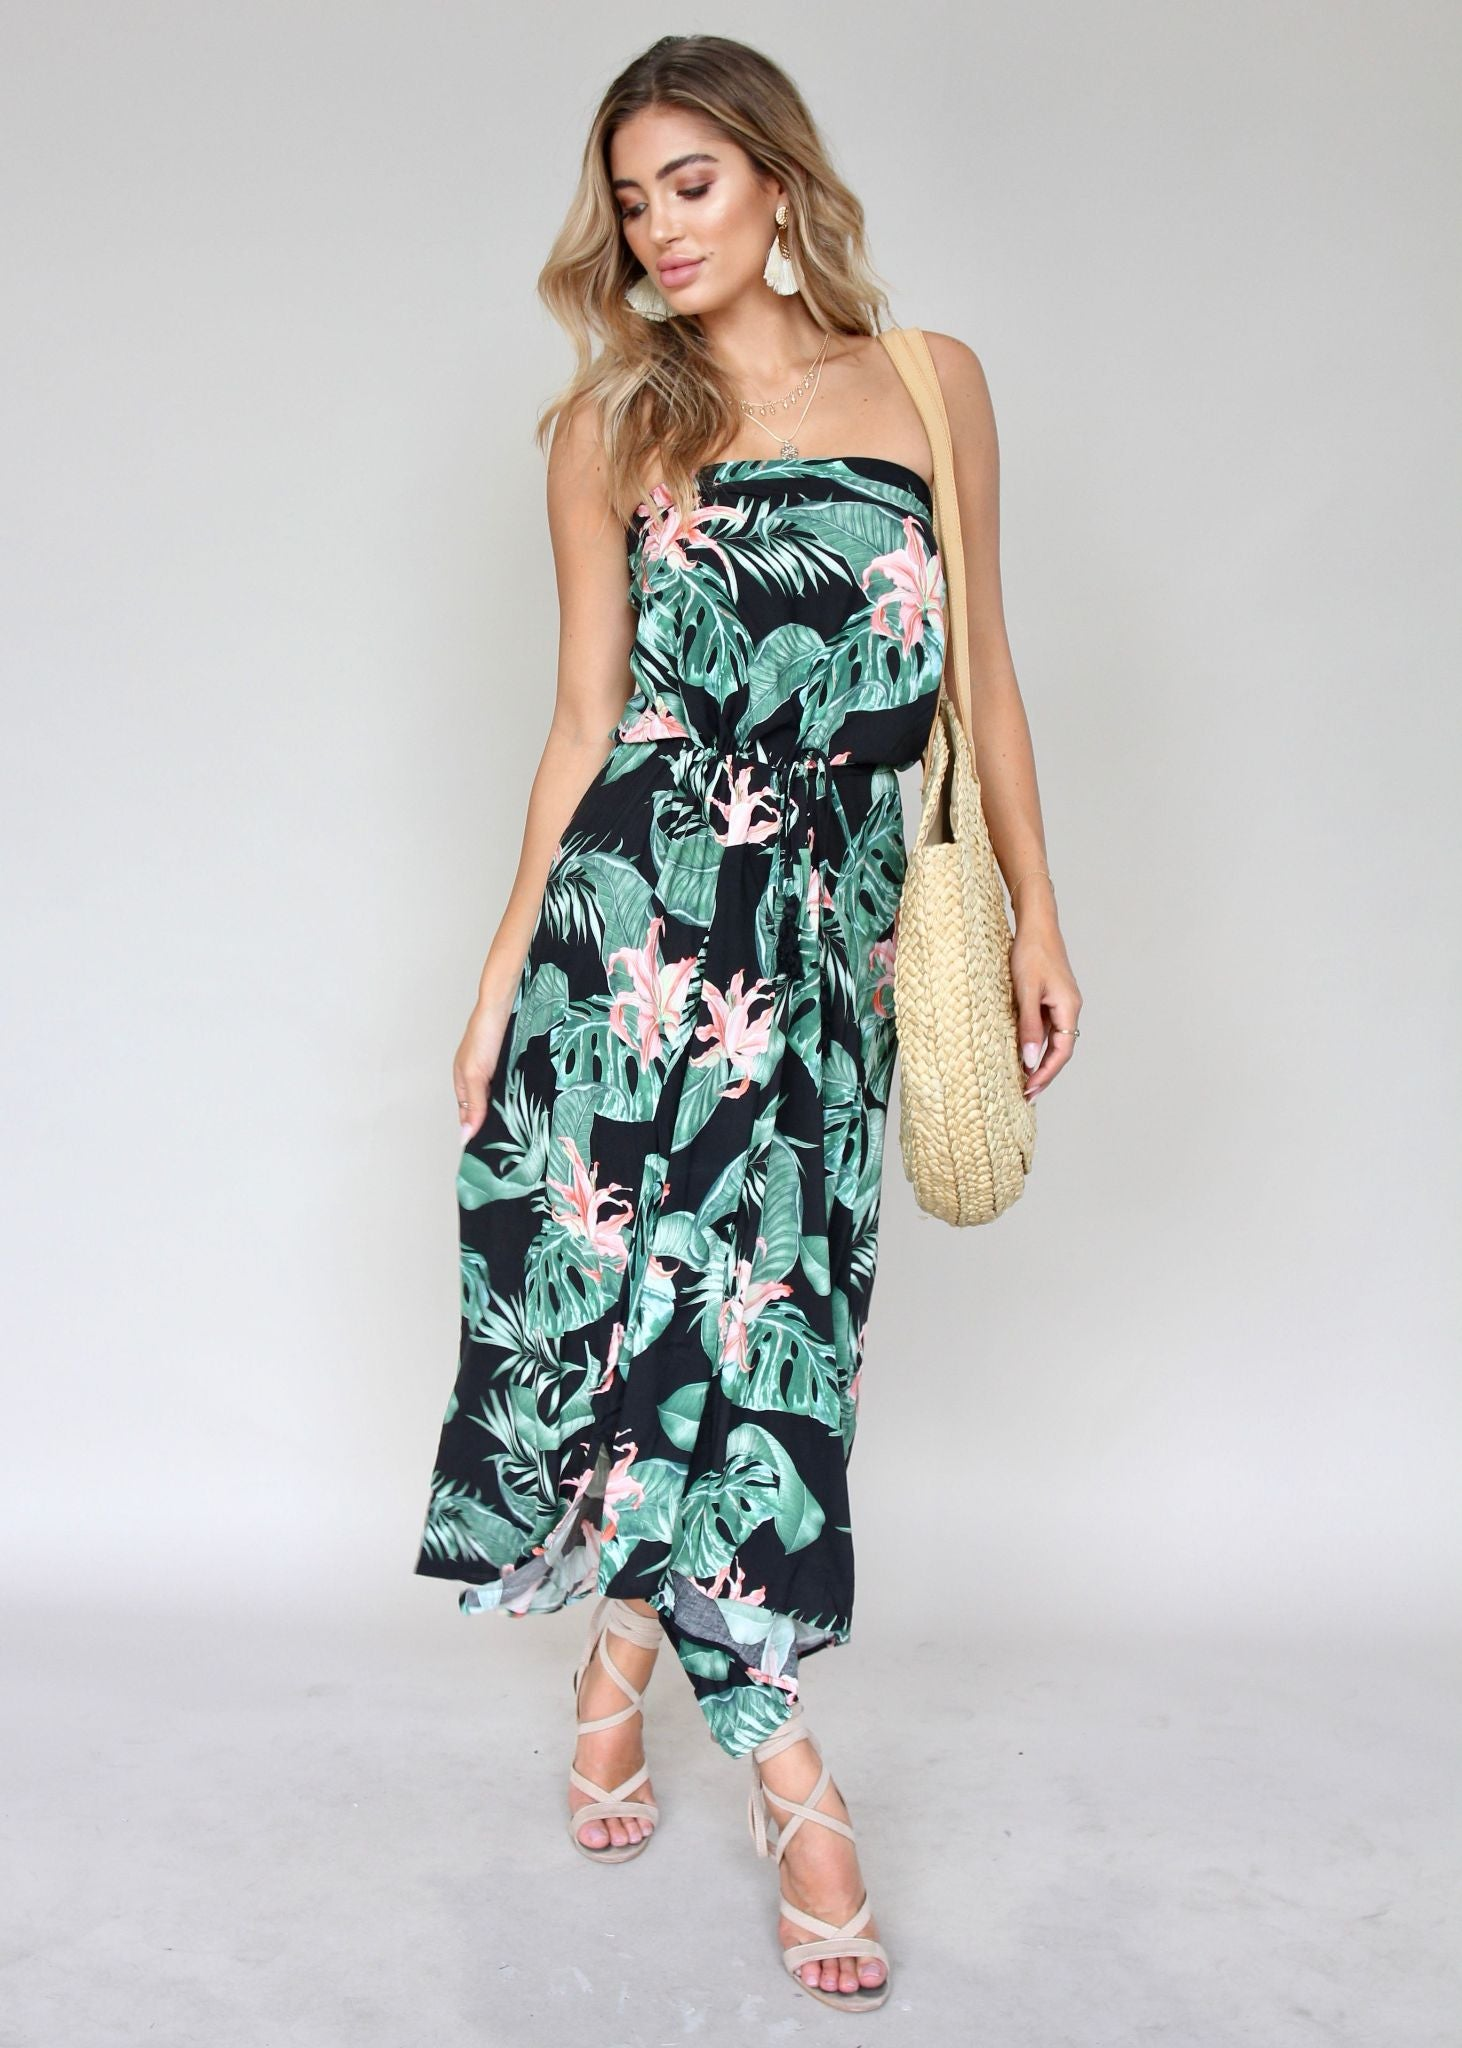 New Freedom Strapless Dress - Black Florida